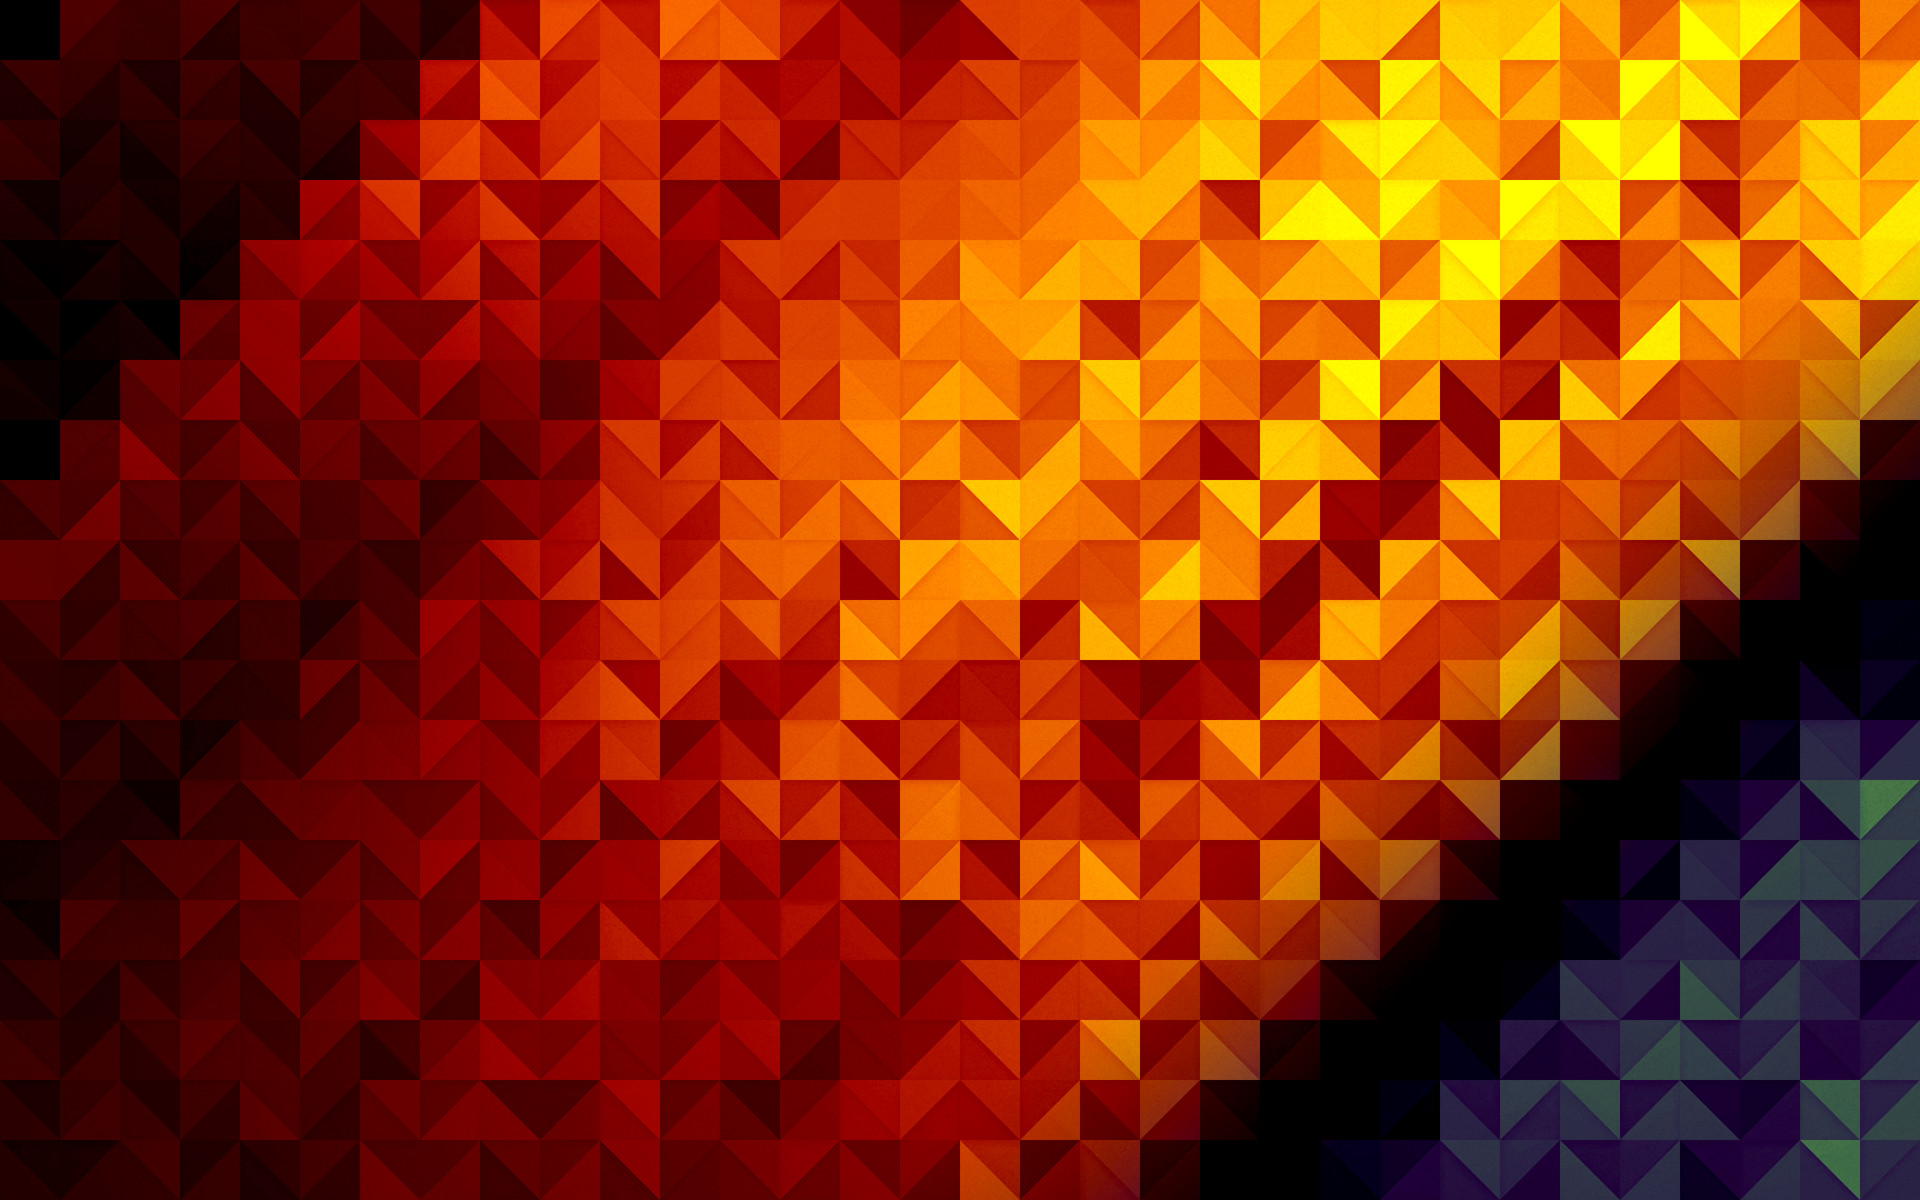 Res: 1920x1200, color,cool images backgrounds,psychedelic, colors, pattern, stock images,  peace, art Wallpaper HD